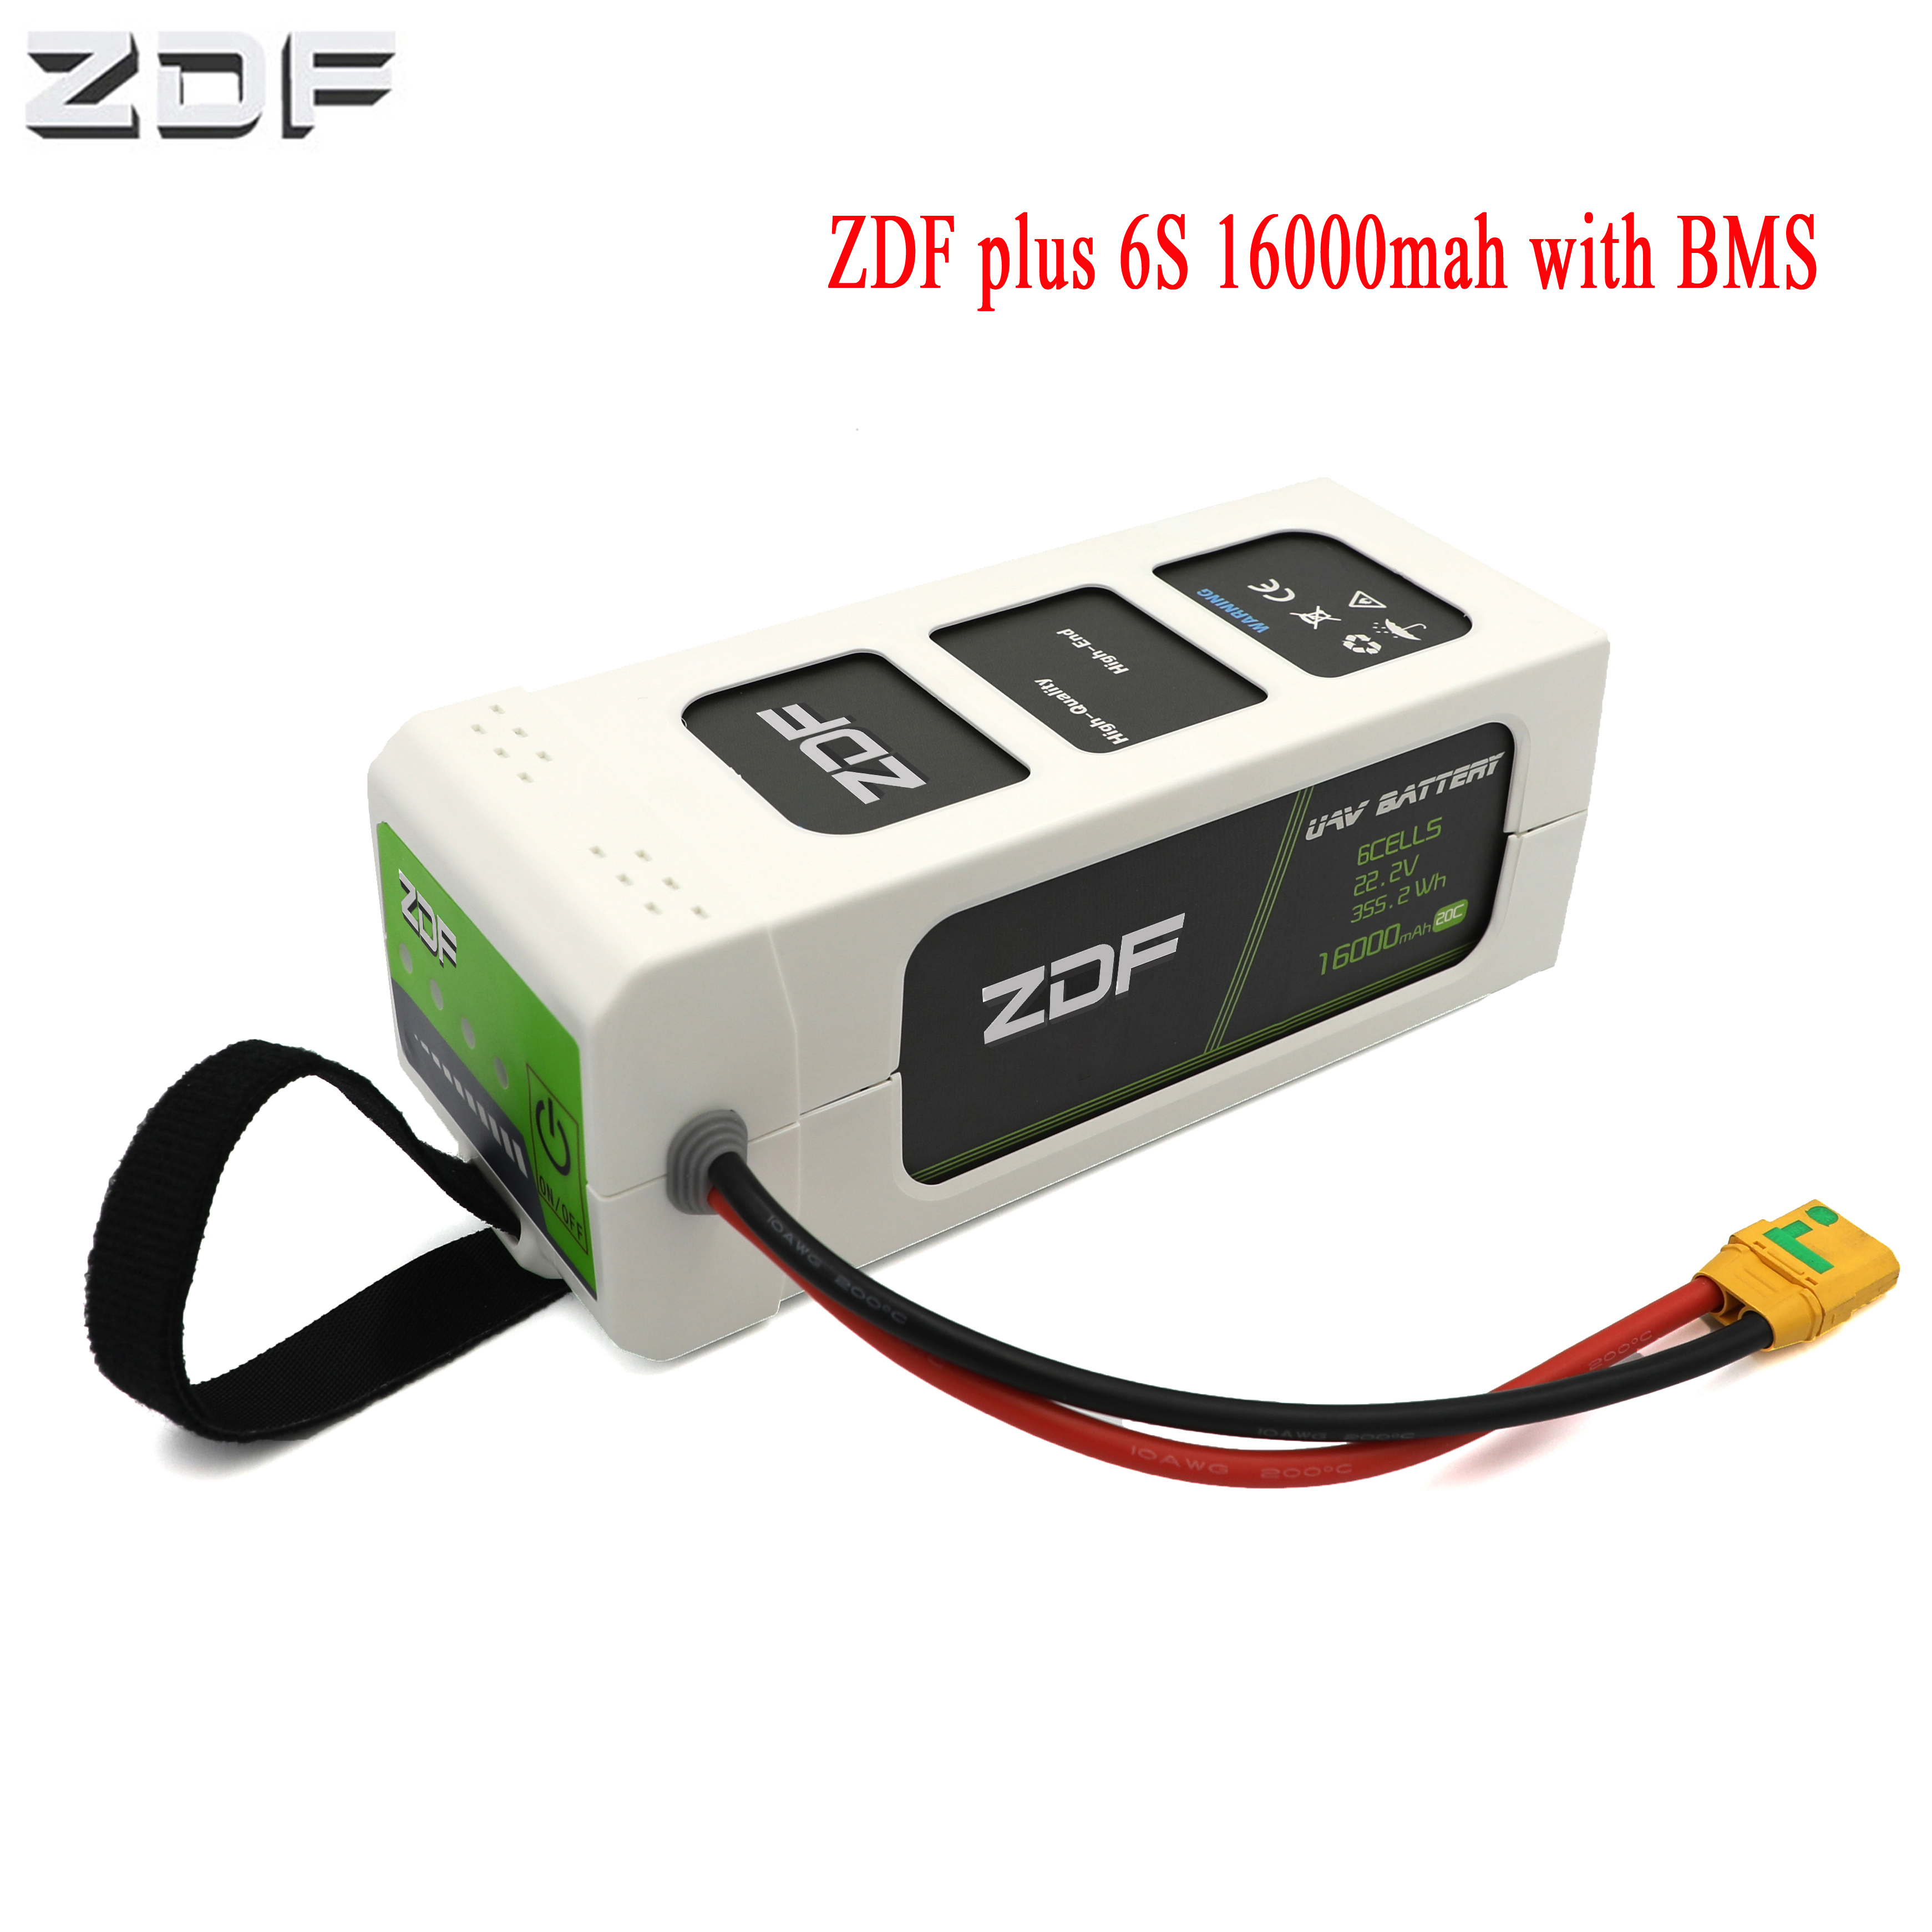 2019 NEW PLUS ZDF 16000mAh 6S 22.2V 6S1P 25C FPV Smart Lipo Battery With BMS For RC Drone image